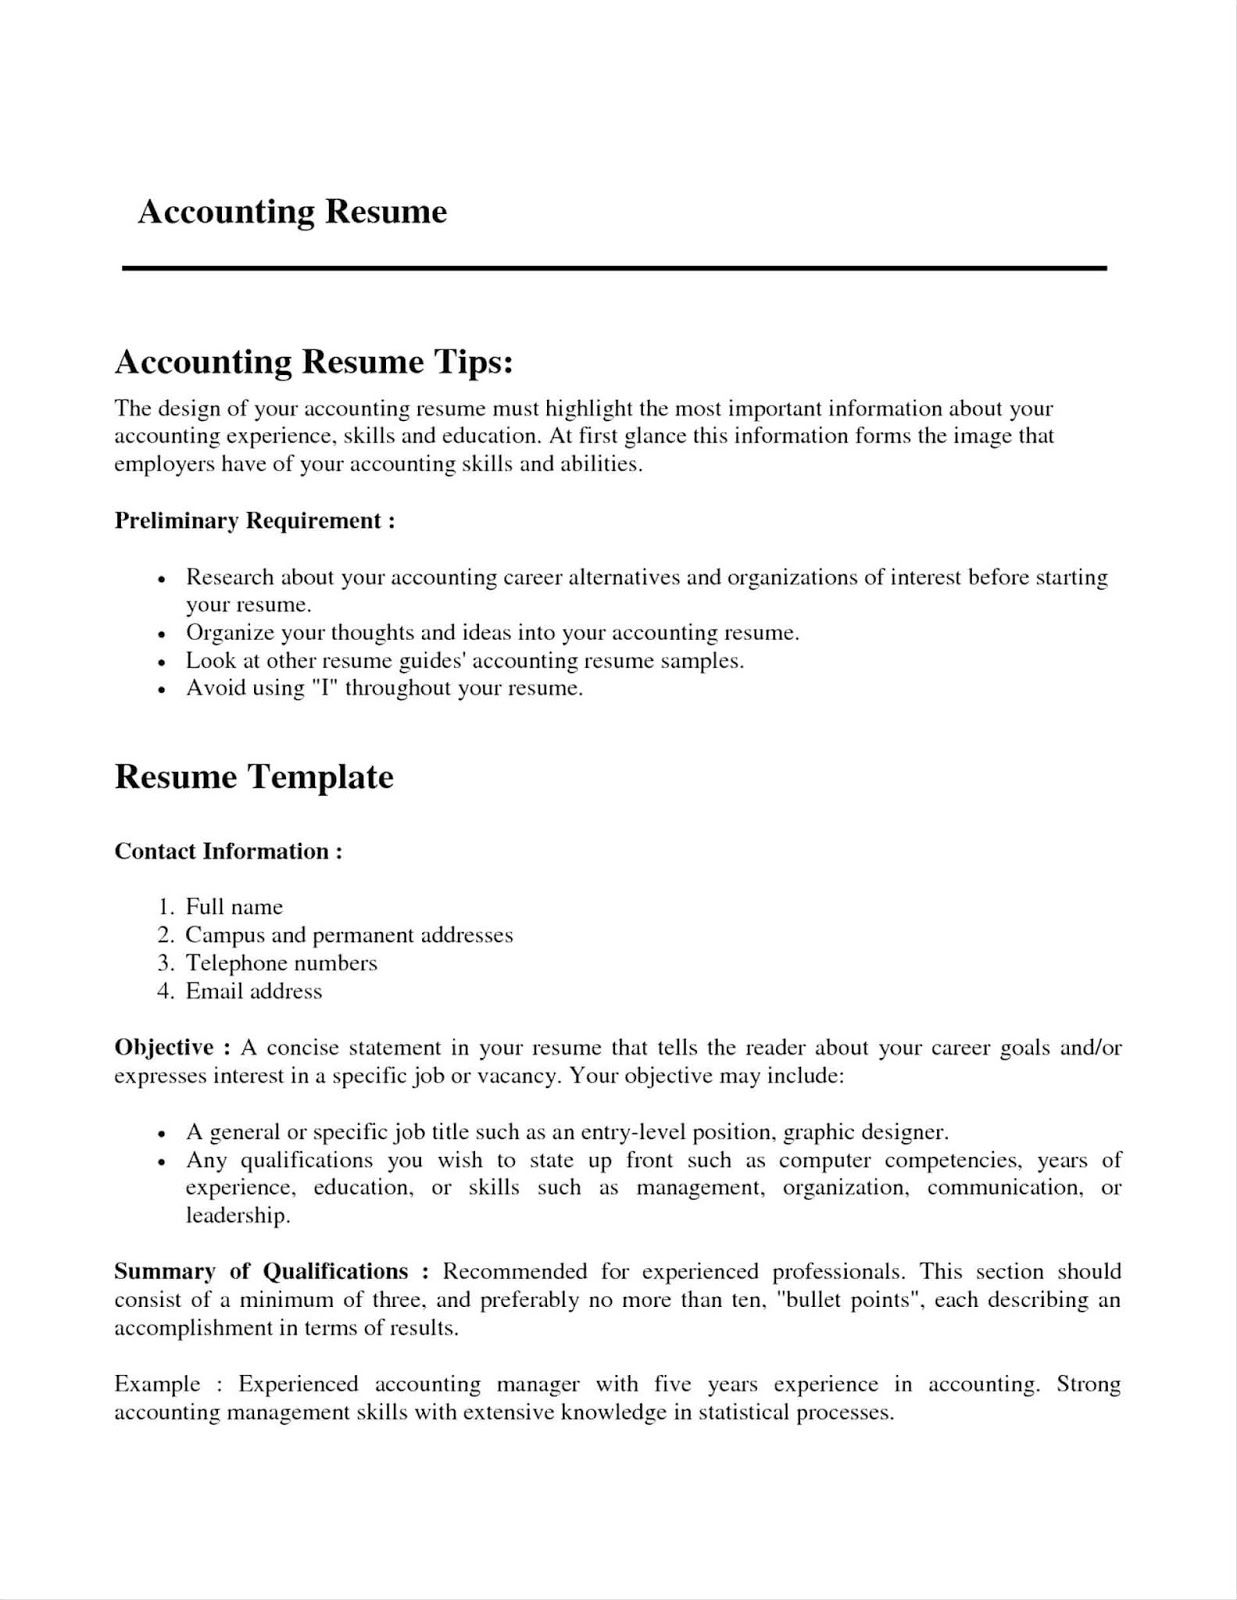 Accounts Payable Resume Format 2019 Resume Templates 2020